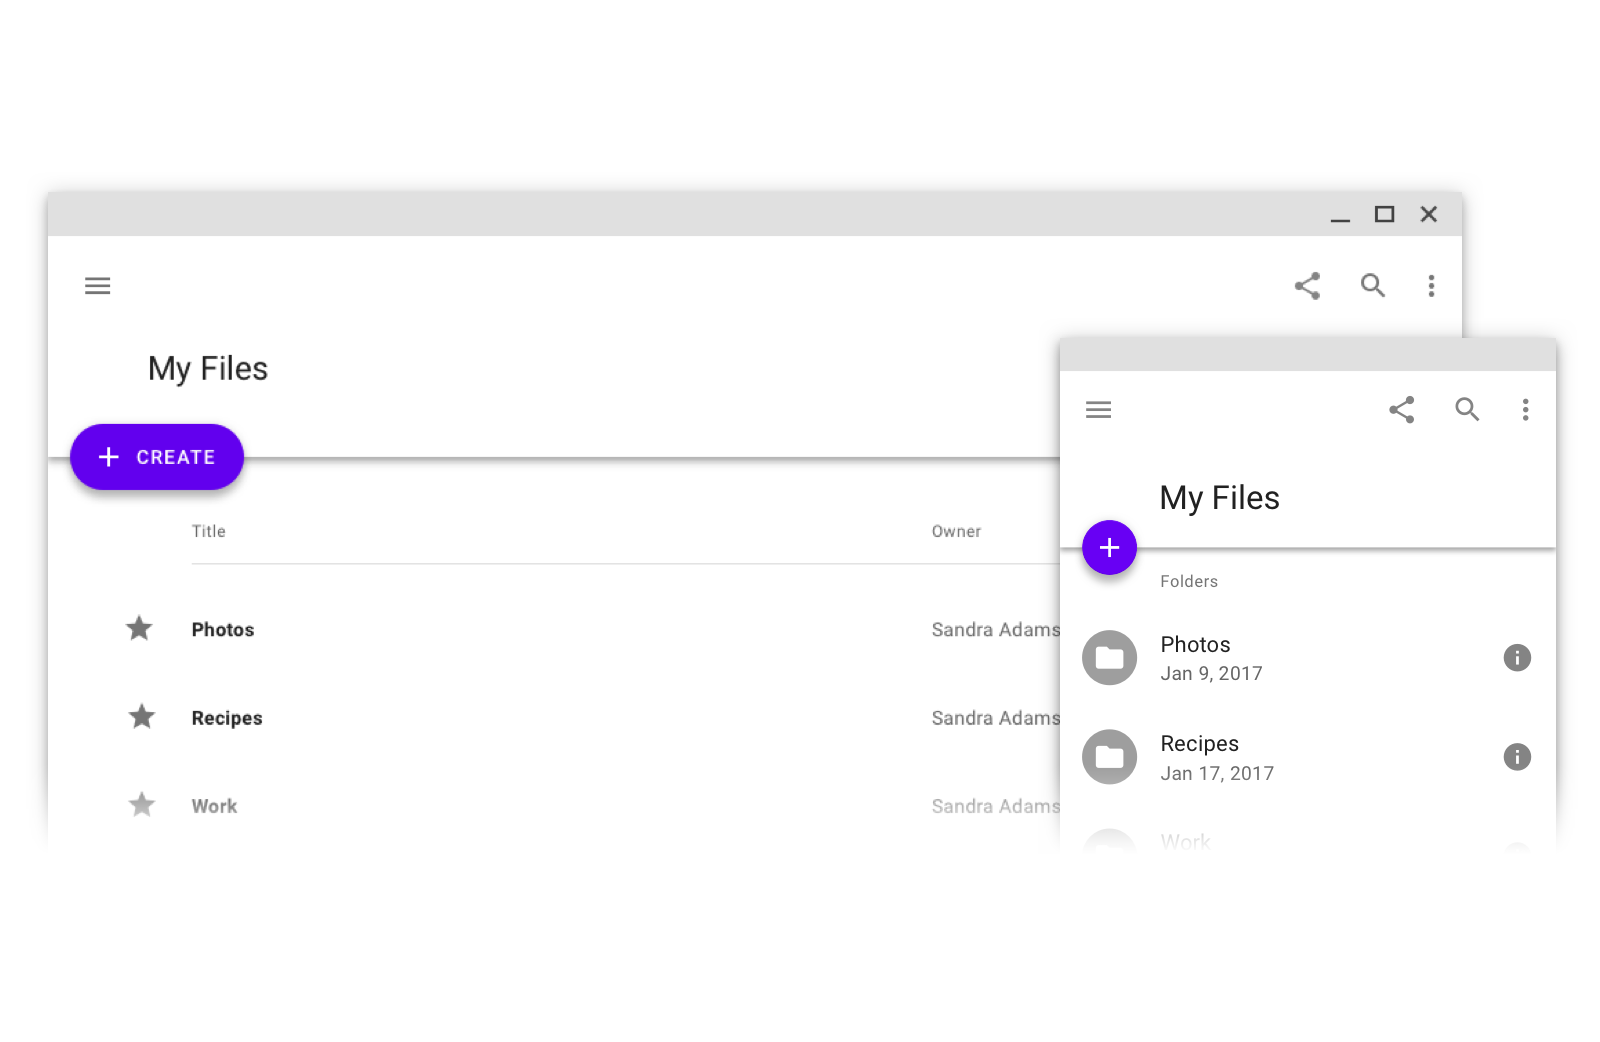 The story behind the Floating Action Button in Material Design